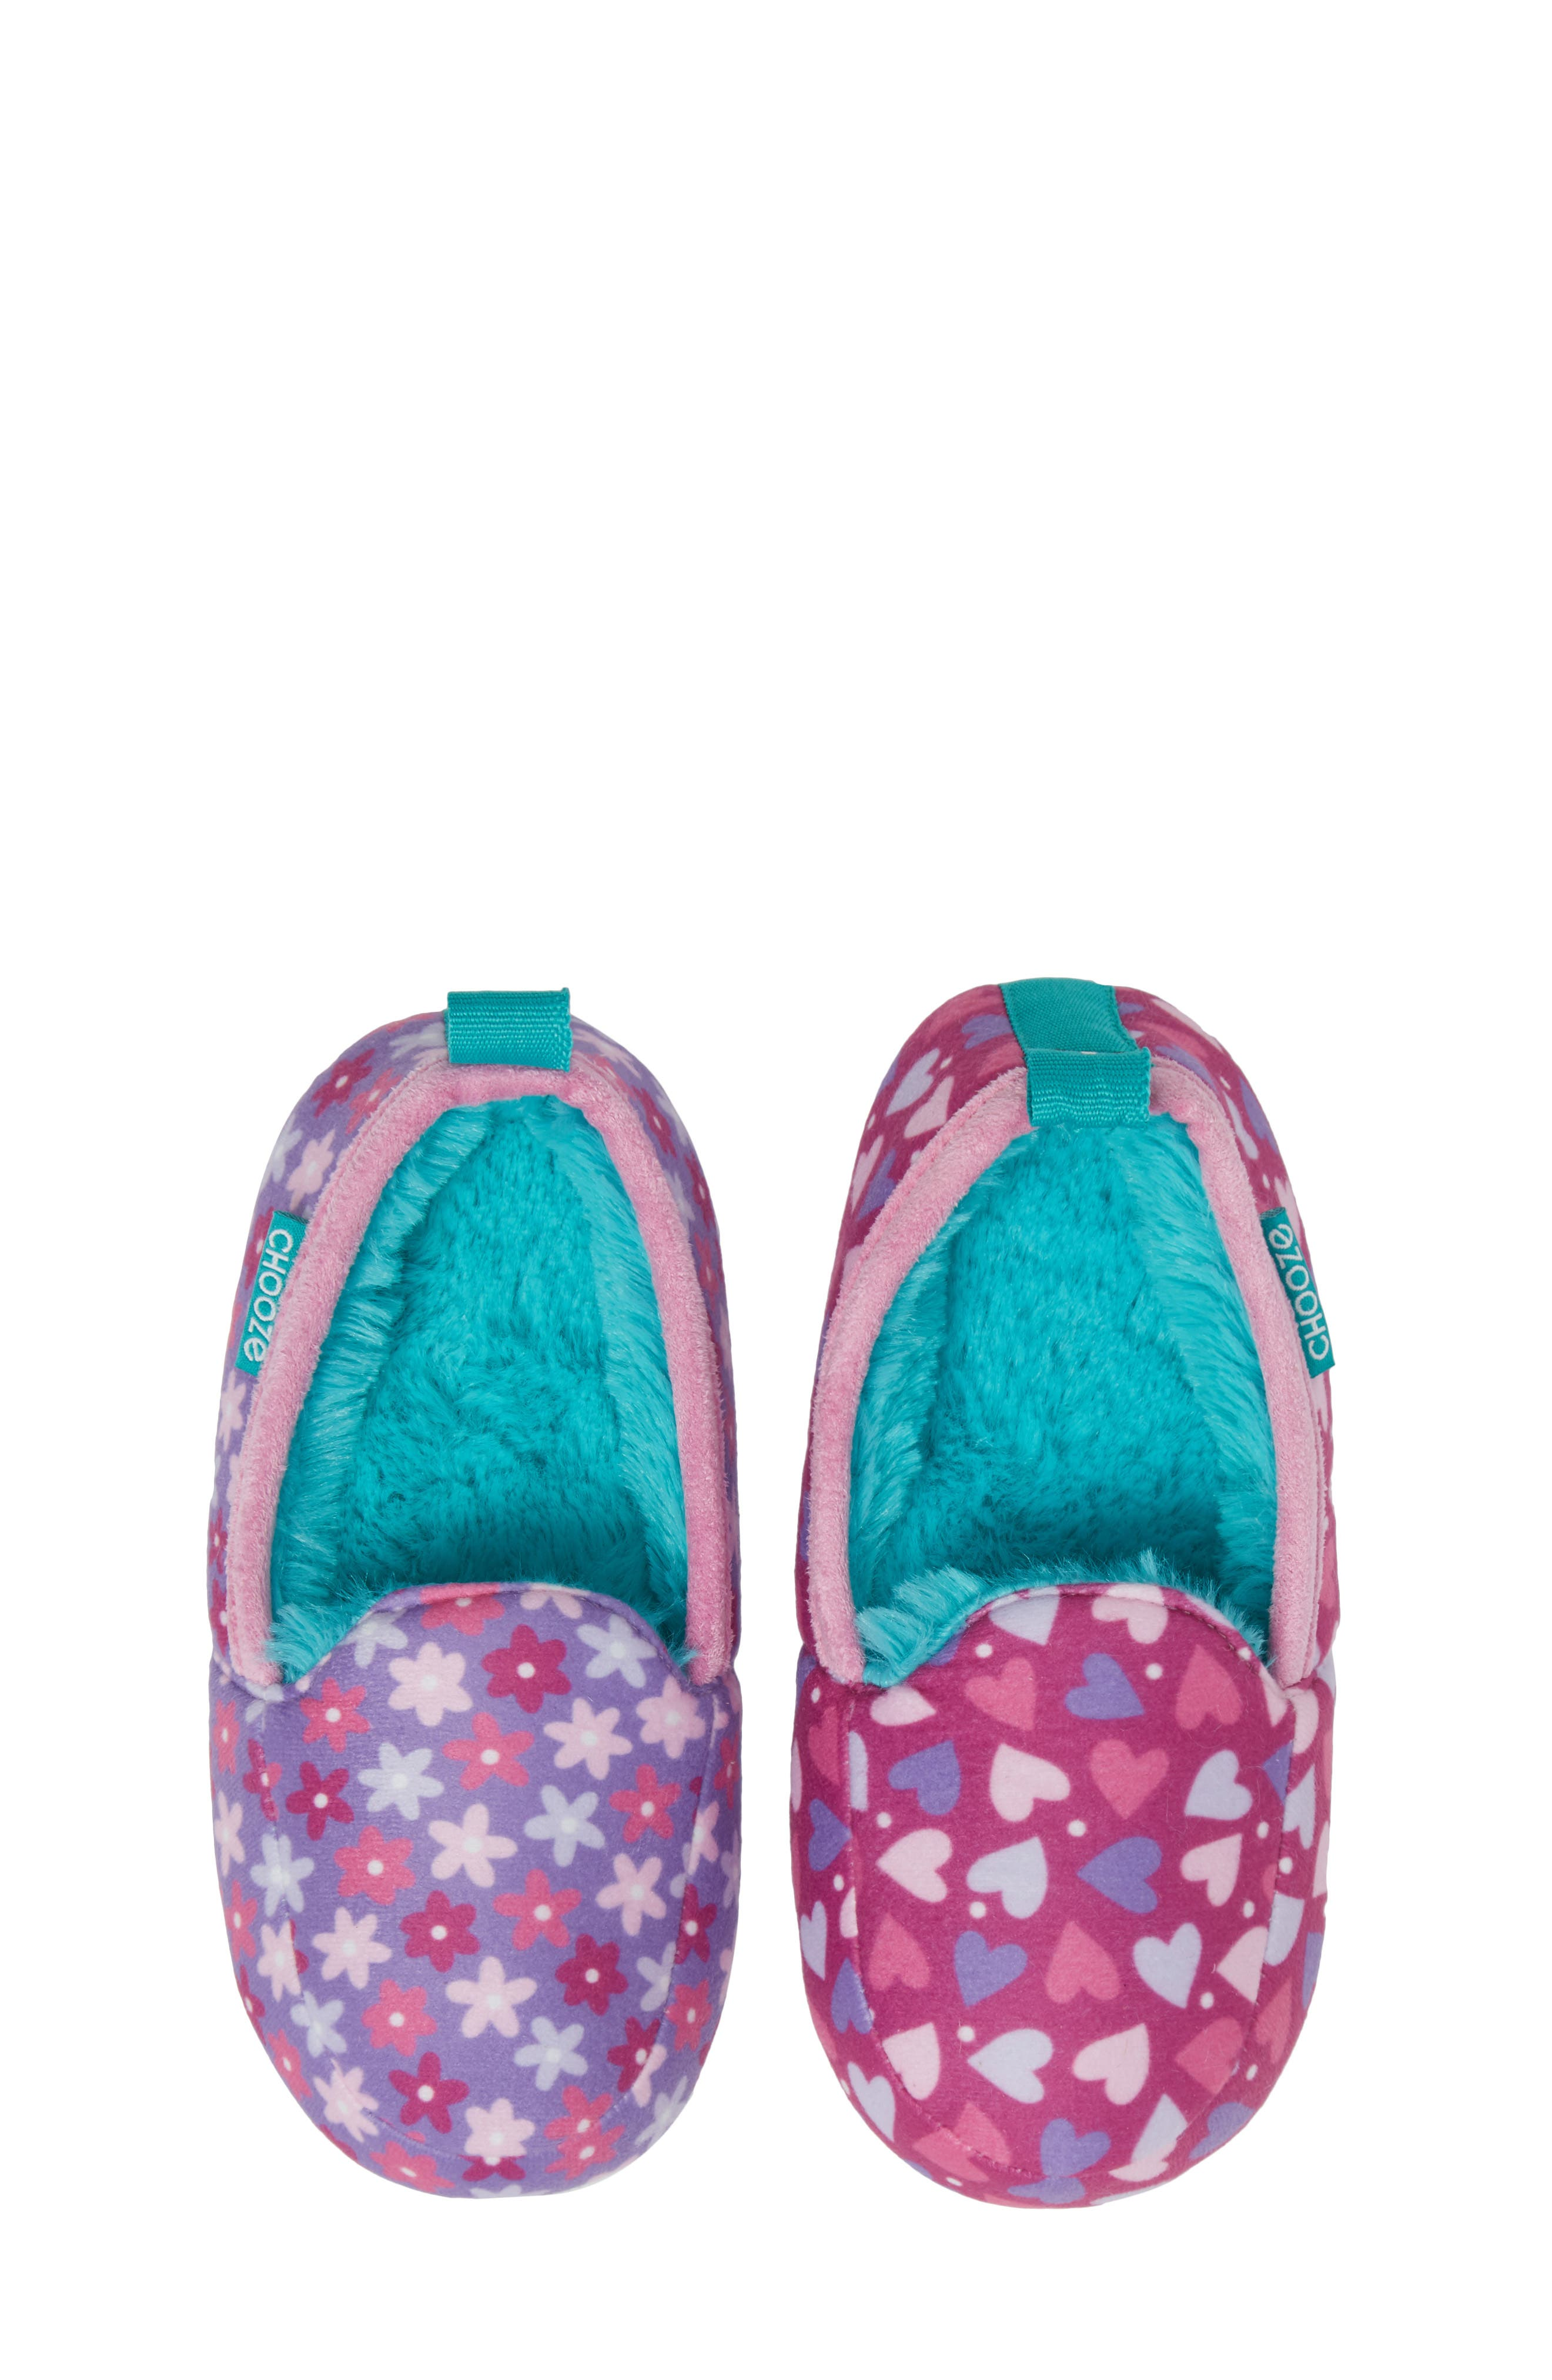 'Slumber' Slippers,                             Main thumbnail 7, color,